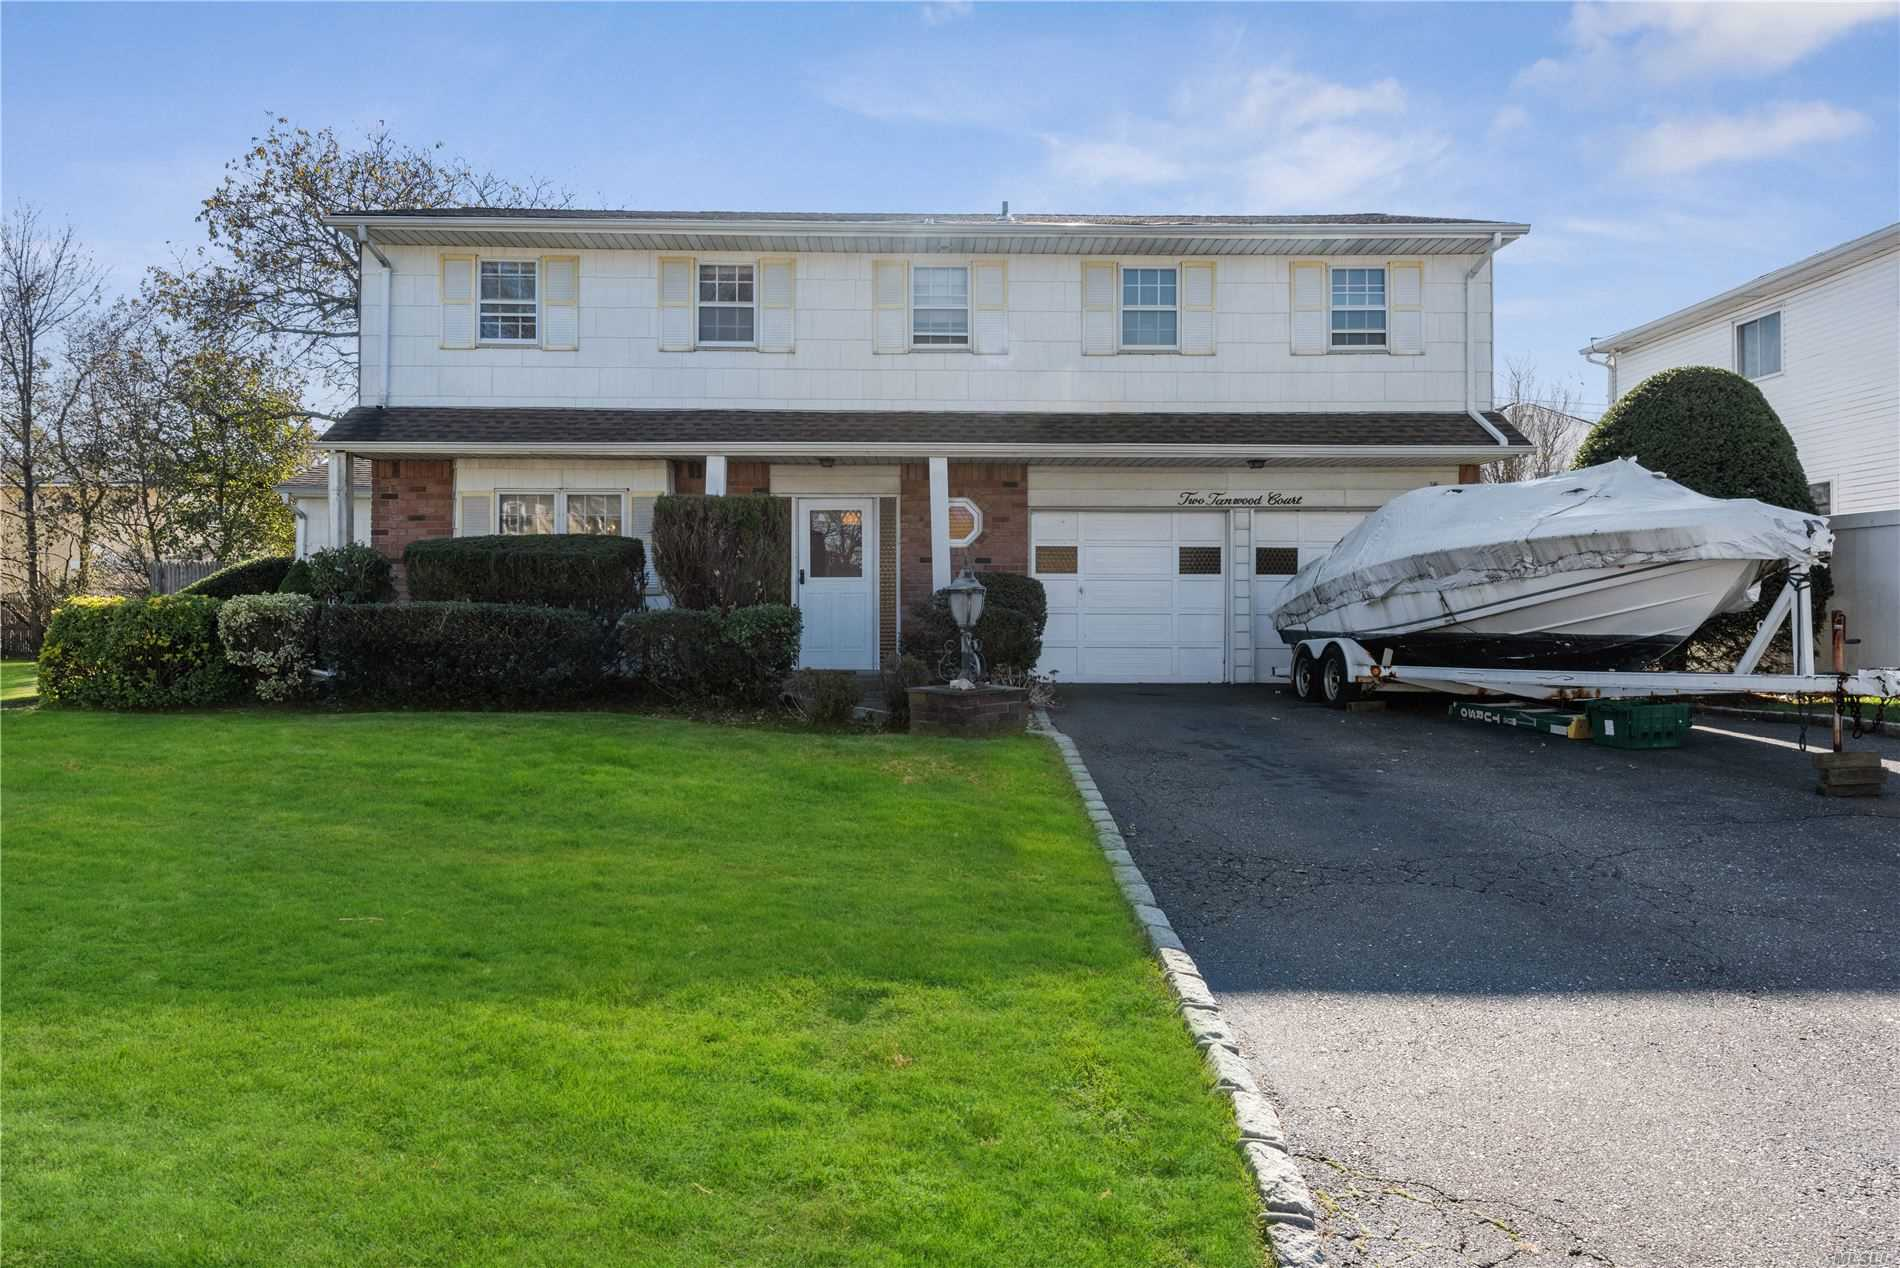 2 Tanwood Ct - Bethpage, New York